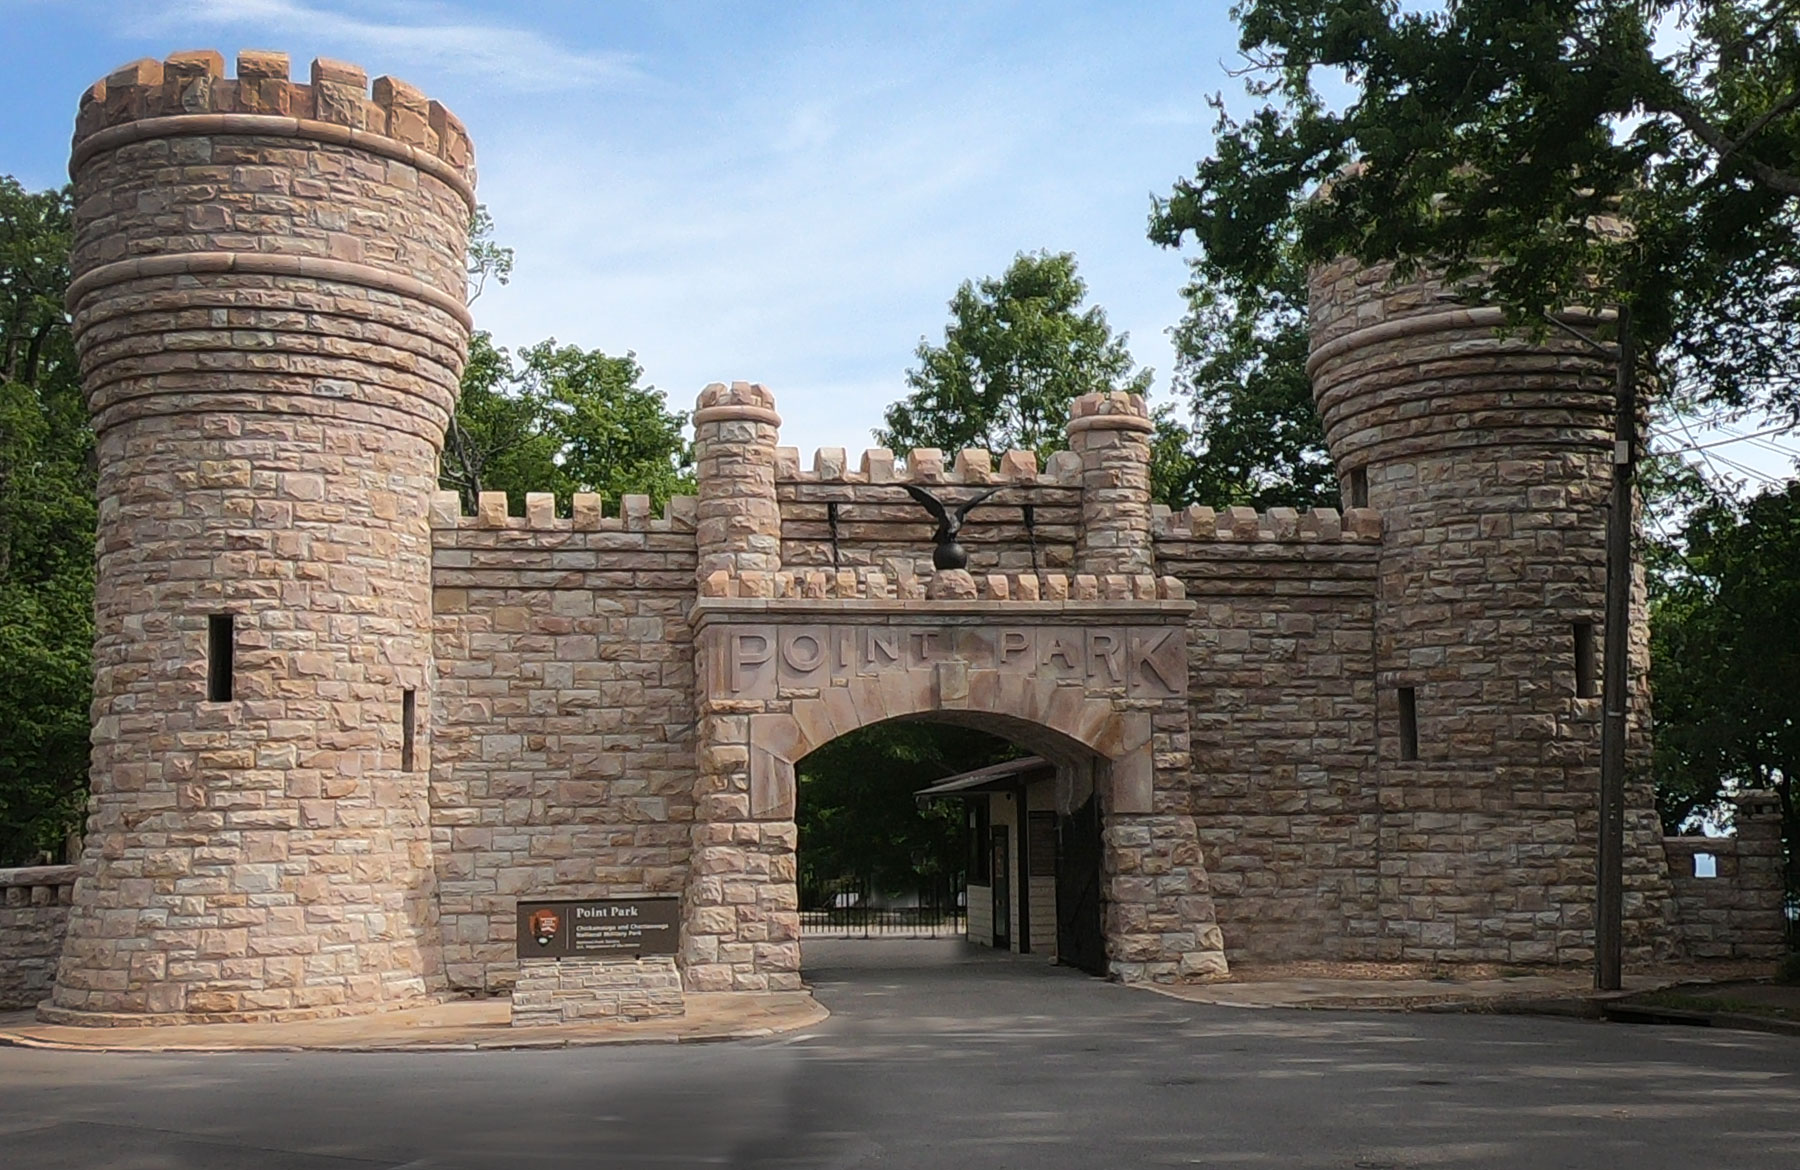 Turreted castle gates of Point Park Gate, Chickamauga and Chattanooga National Military Park, Tennessee